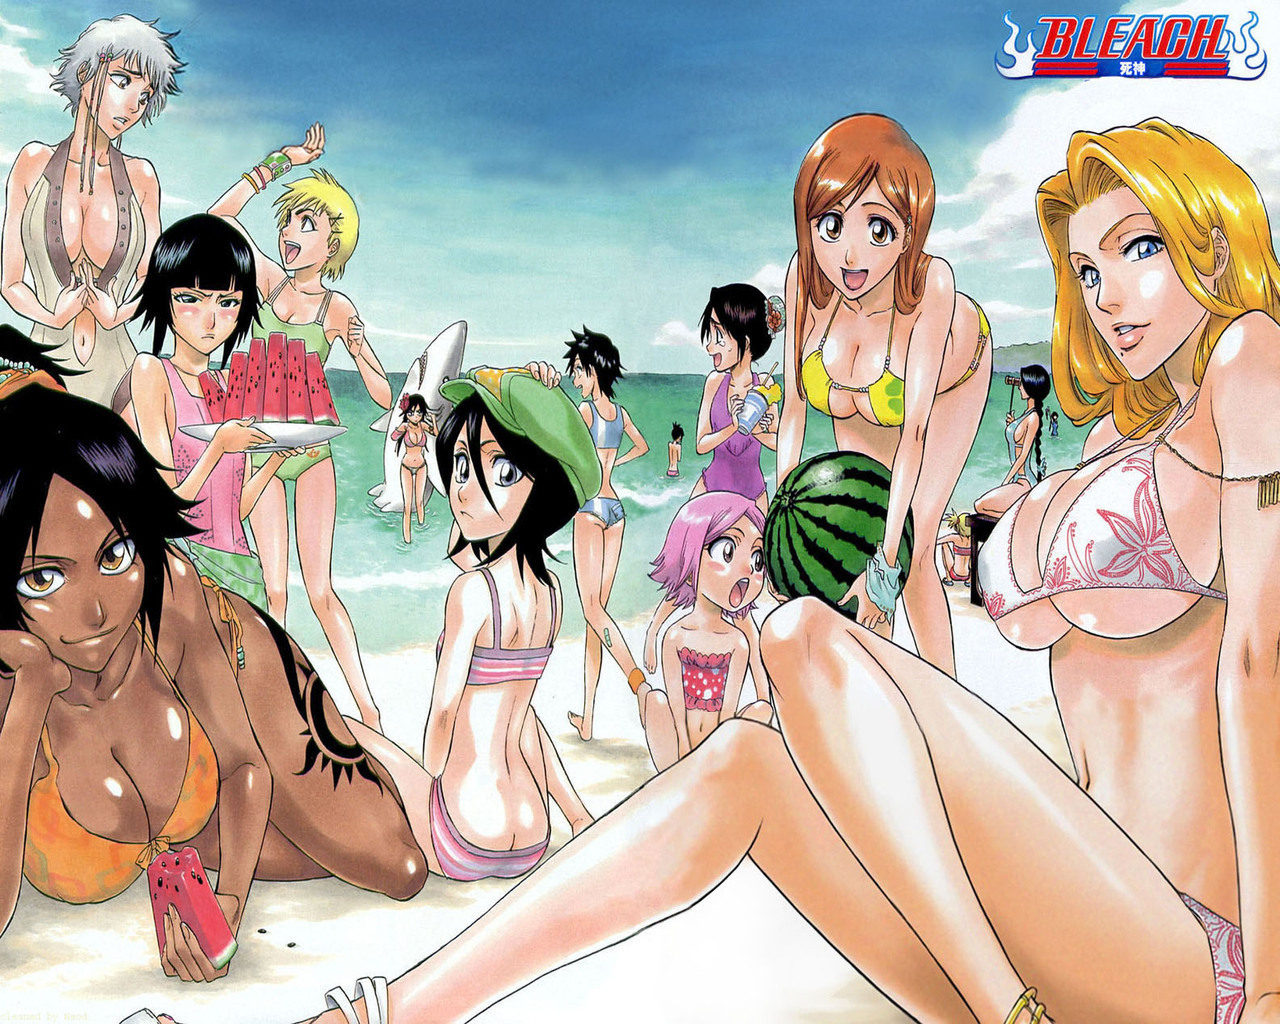 Bleach Girls at the Beach